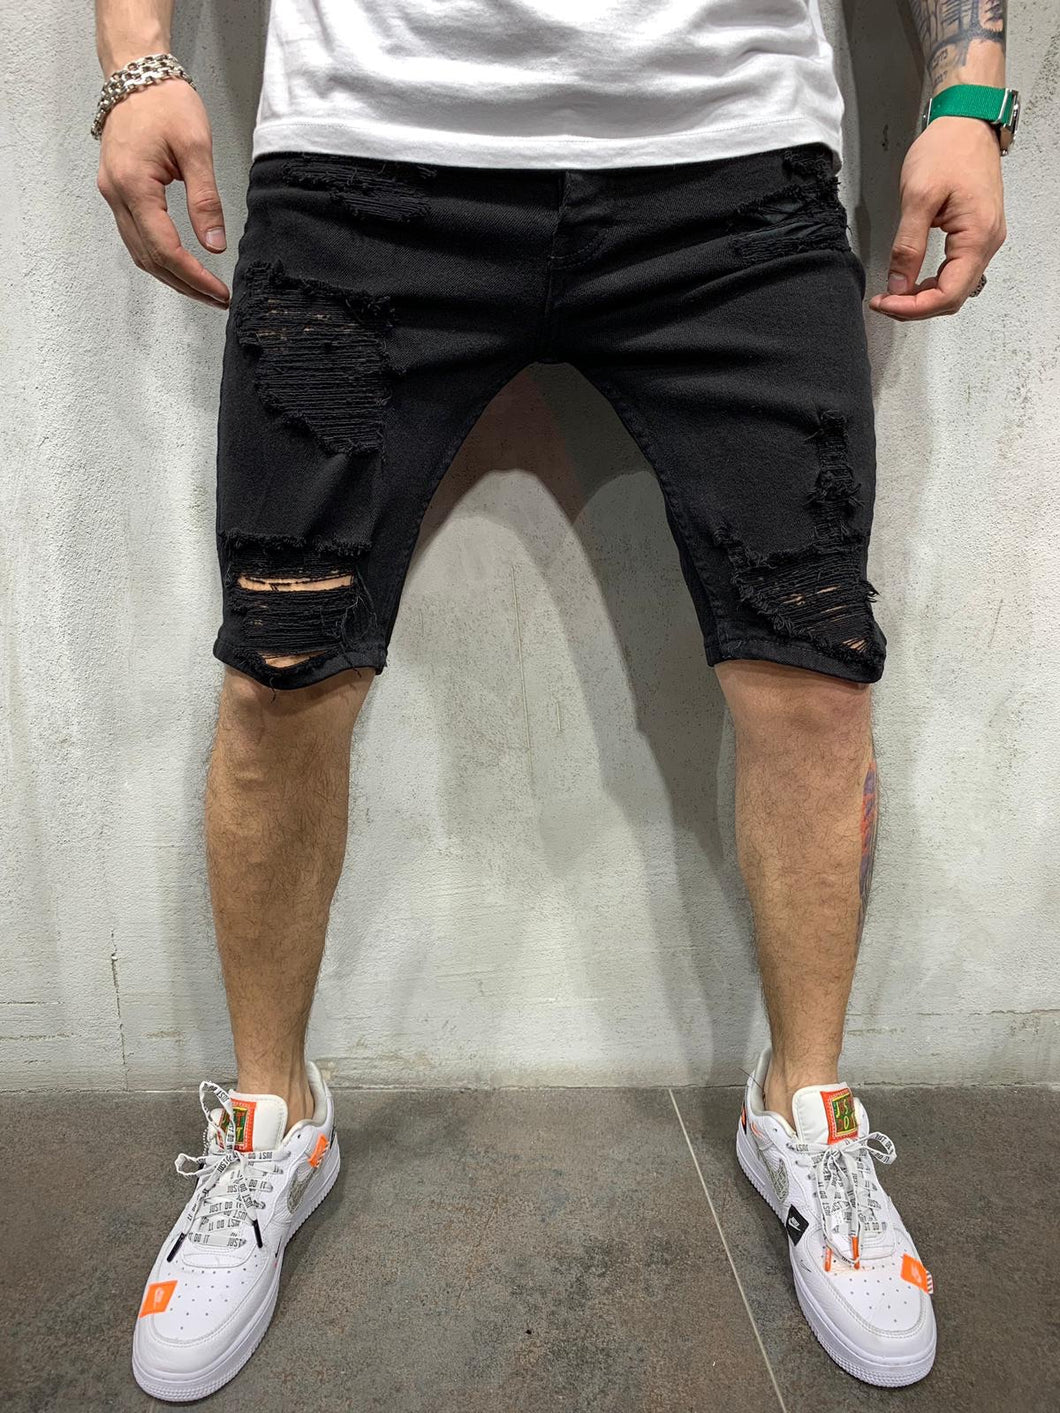 Black Ripped Jeans Short AY464 Streetwear Mens Shorts